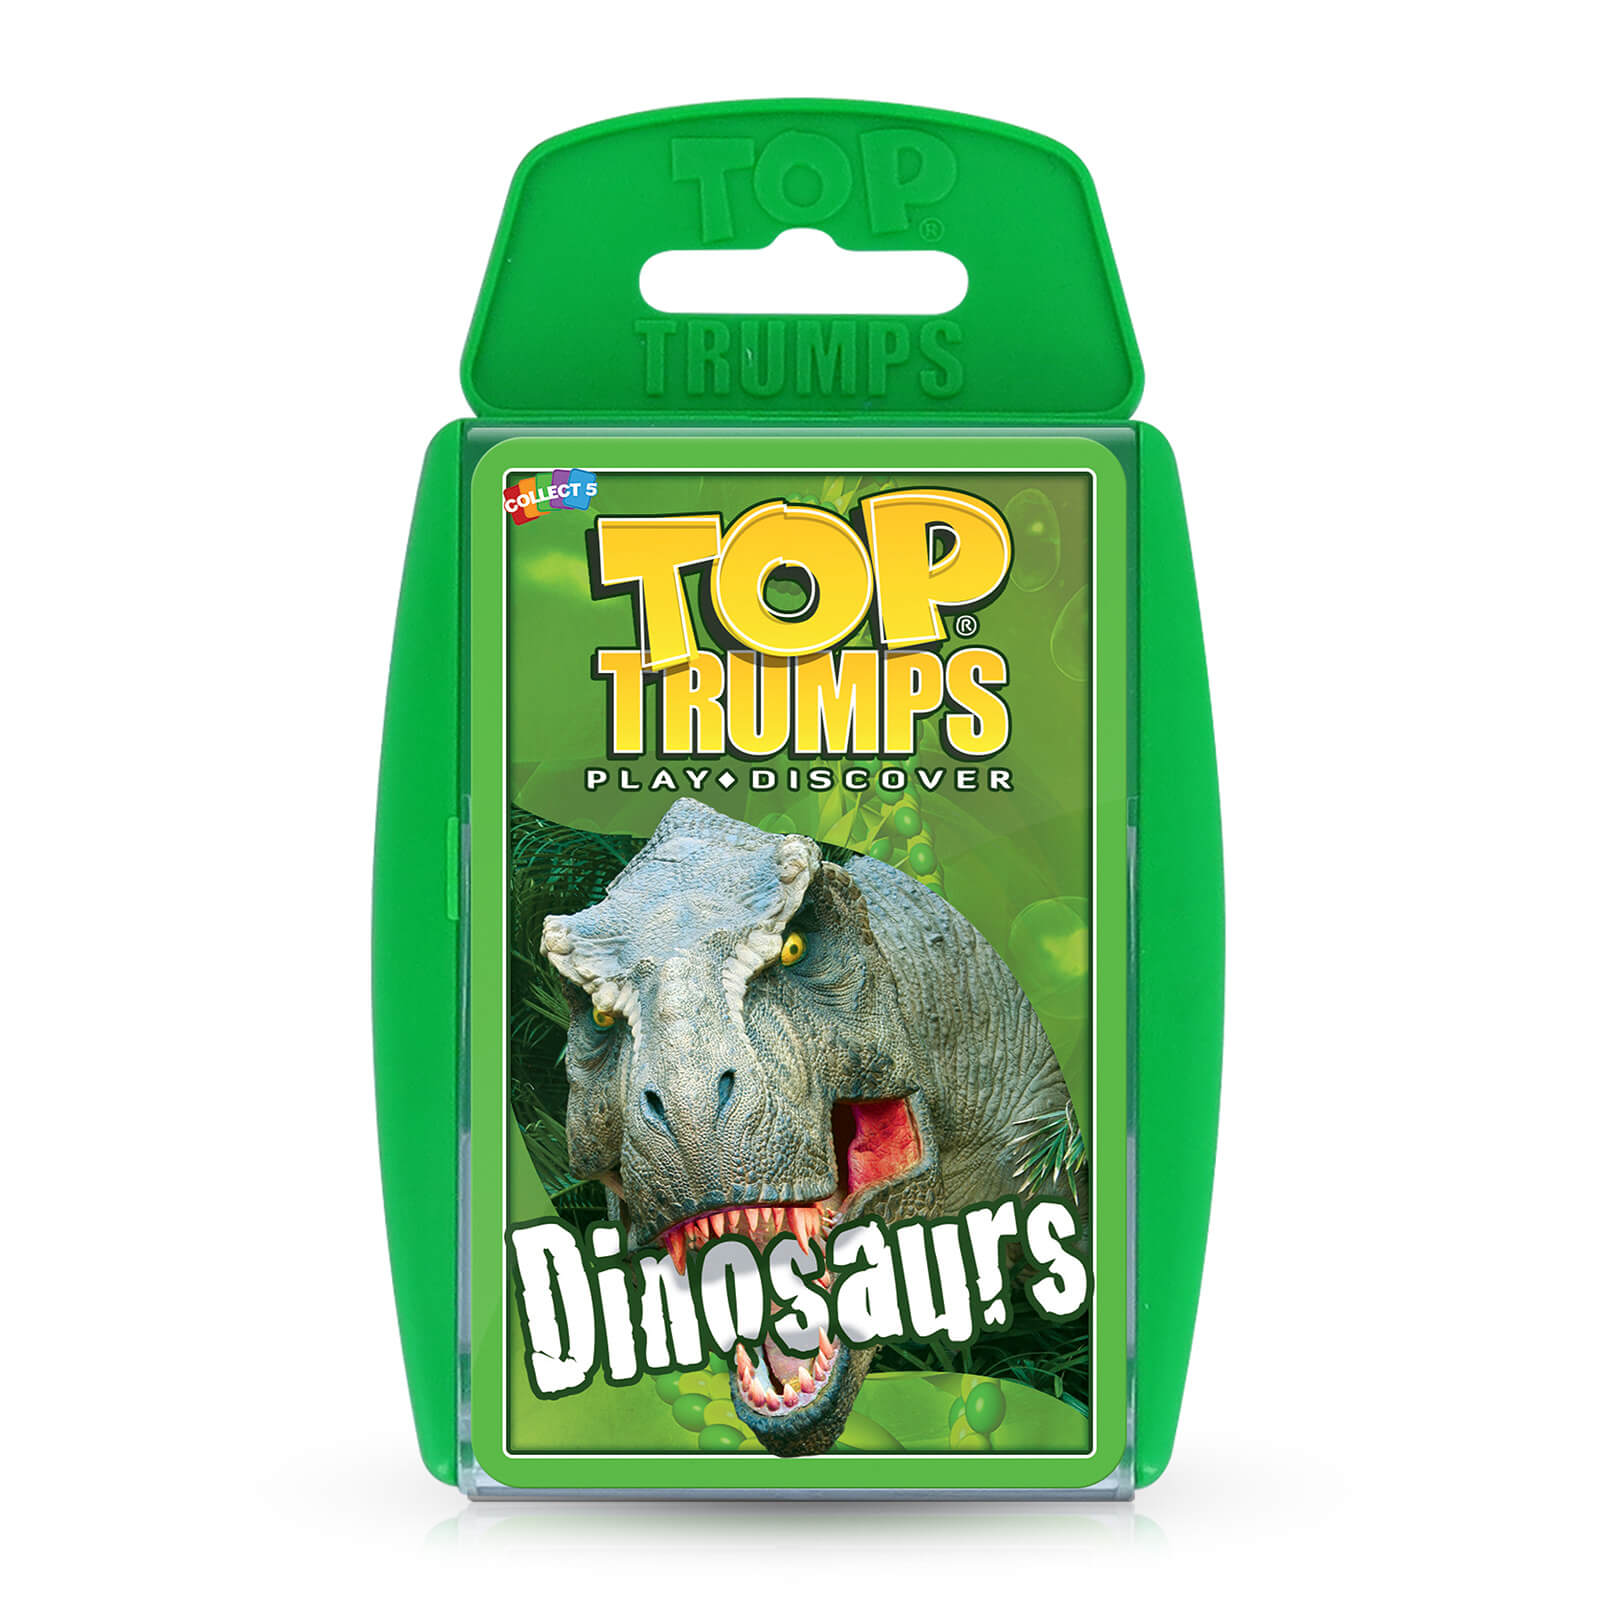 Image of Top Trumps Card Game - Dinosaurs Edition